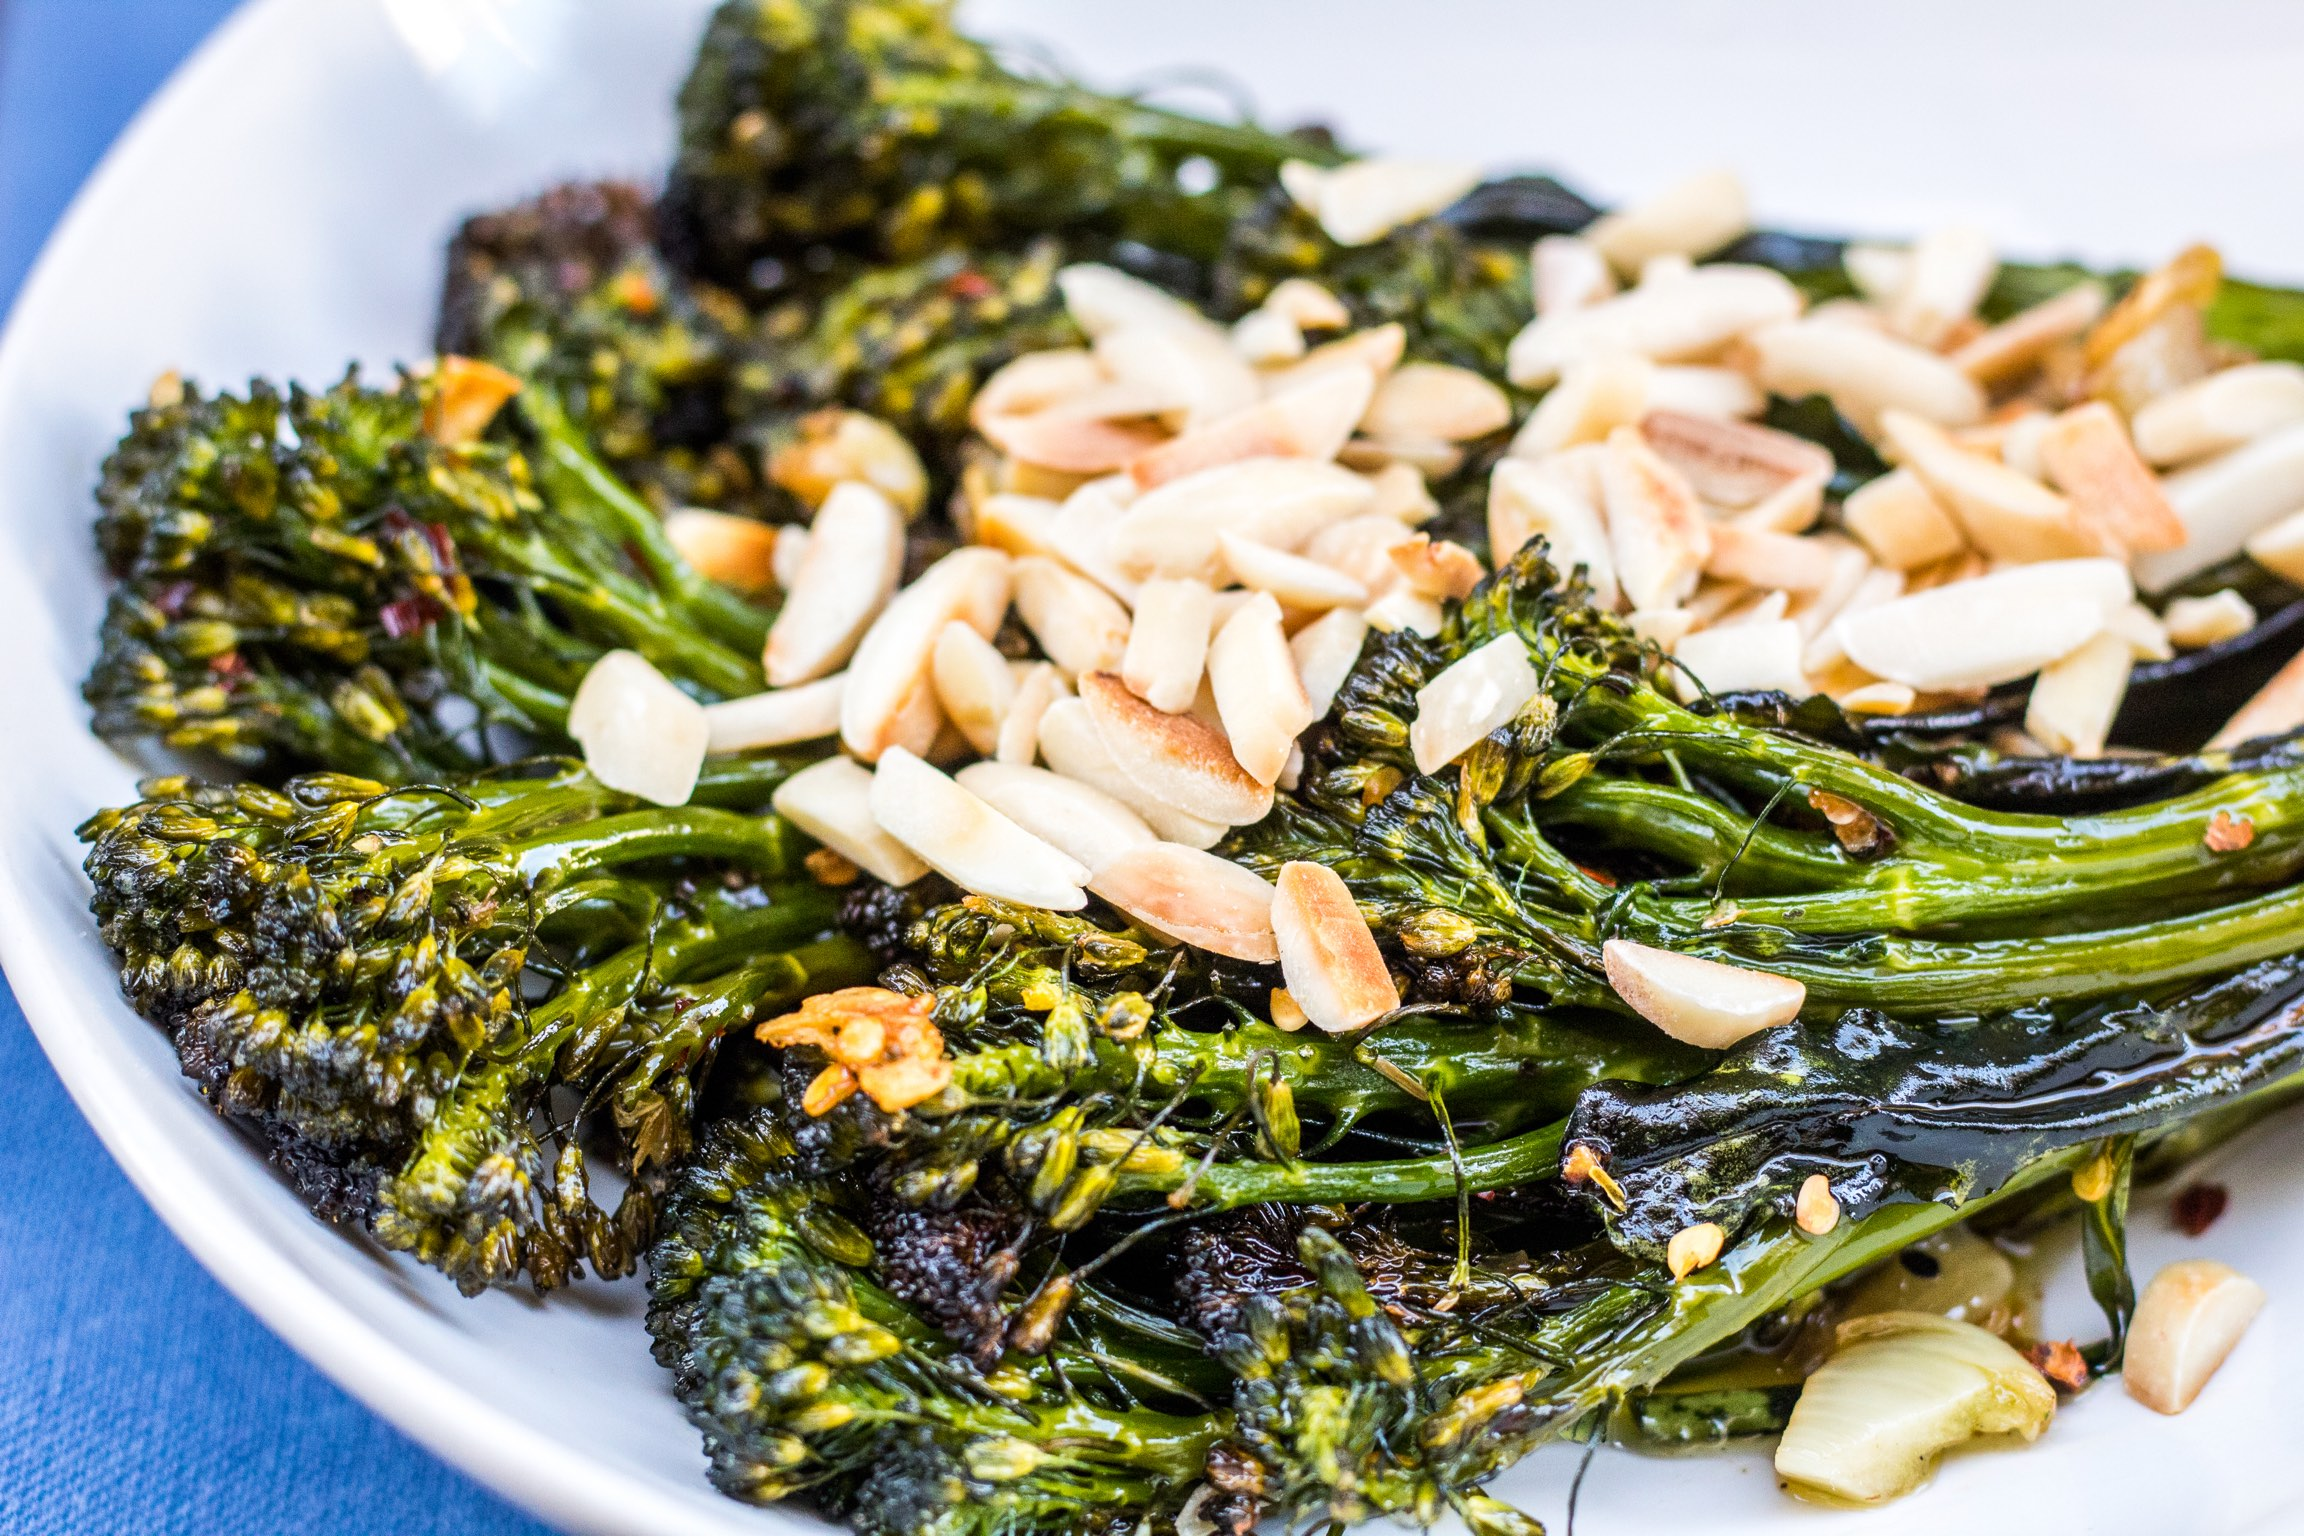 Spicy broccolini